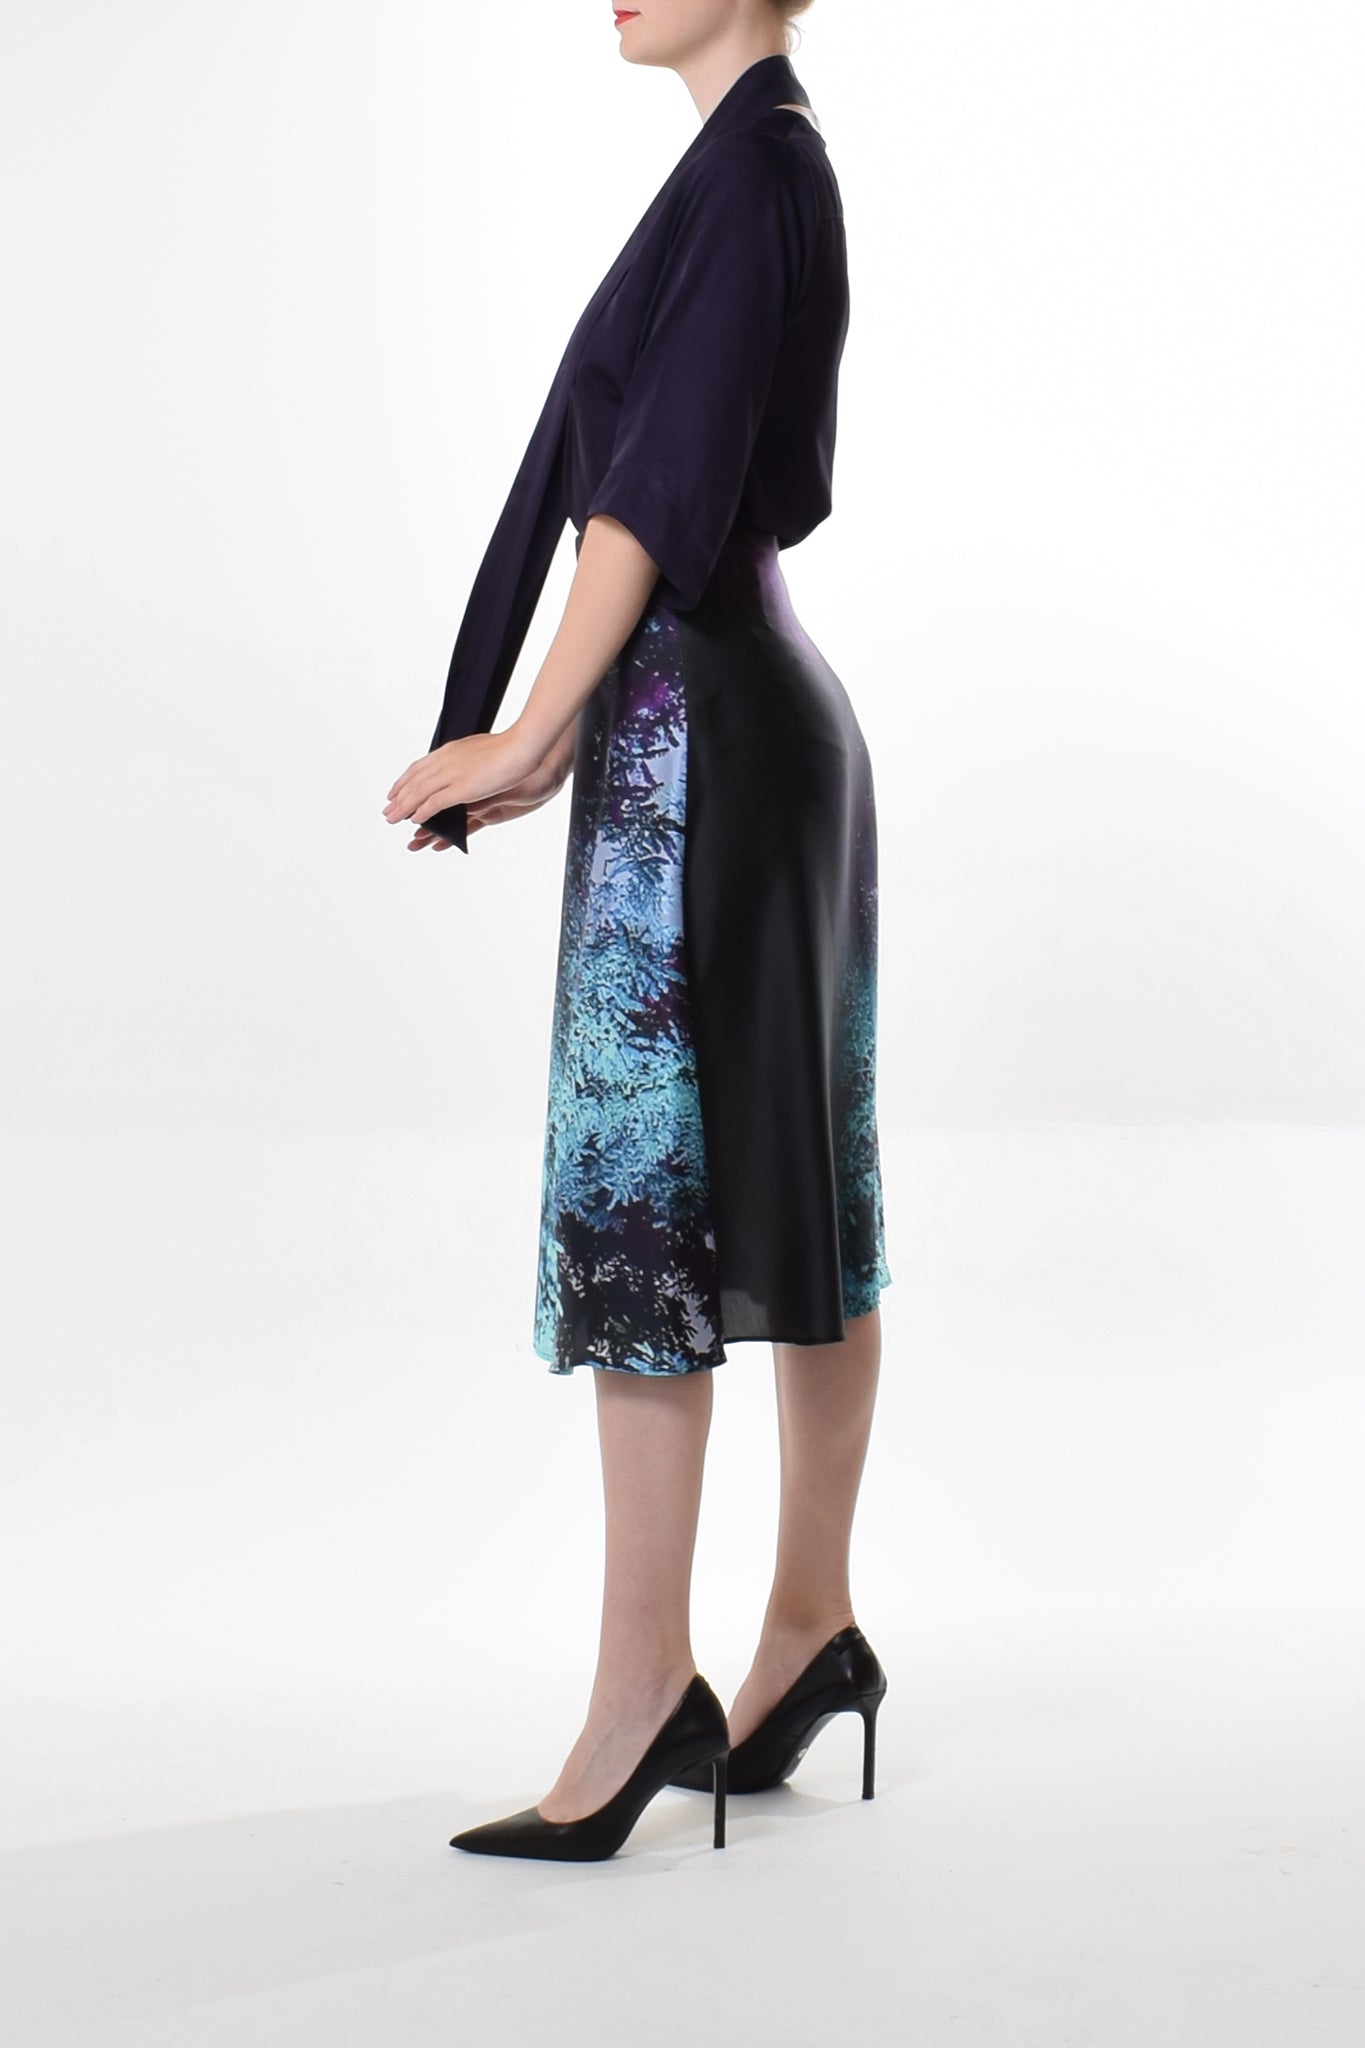 Daisy dress in Pink (Rothko)